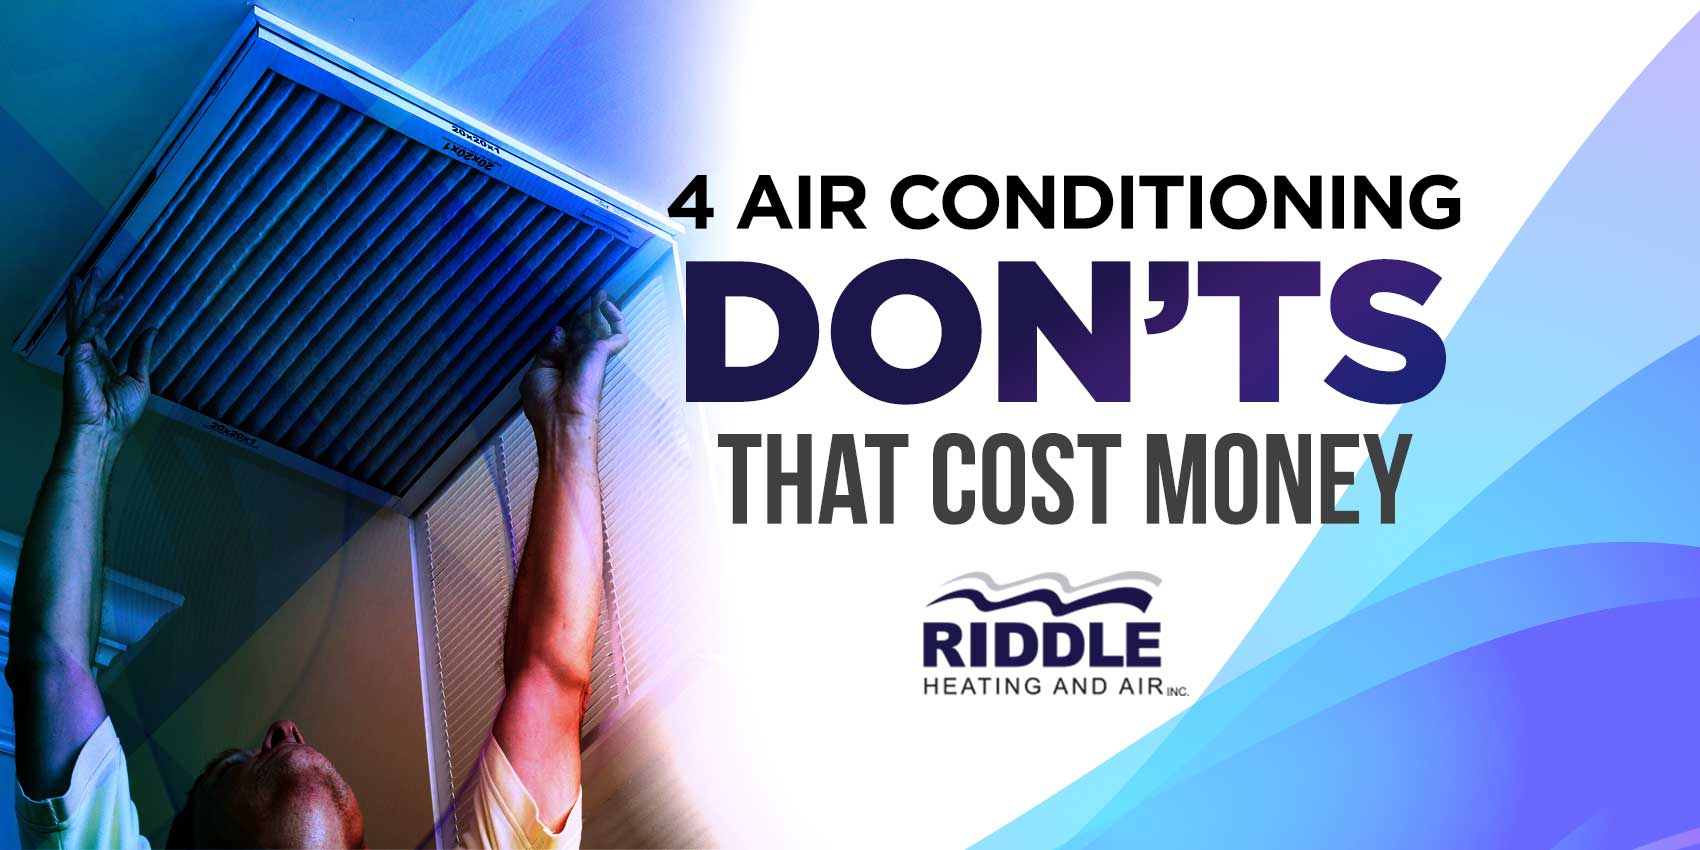 4 Air Conditioning DON'TS That Cost Money